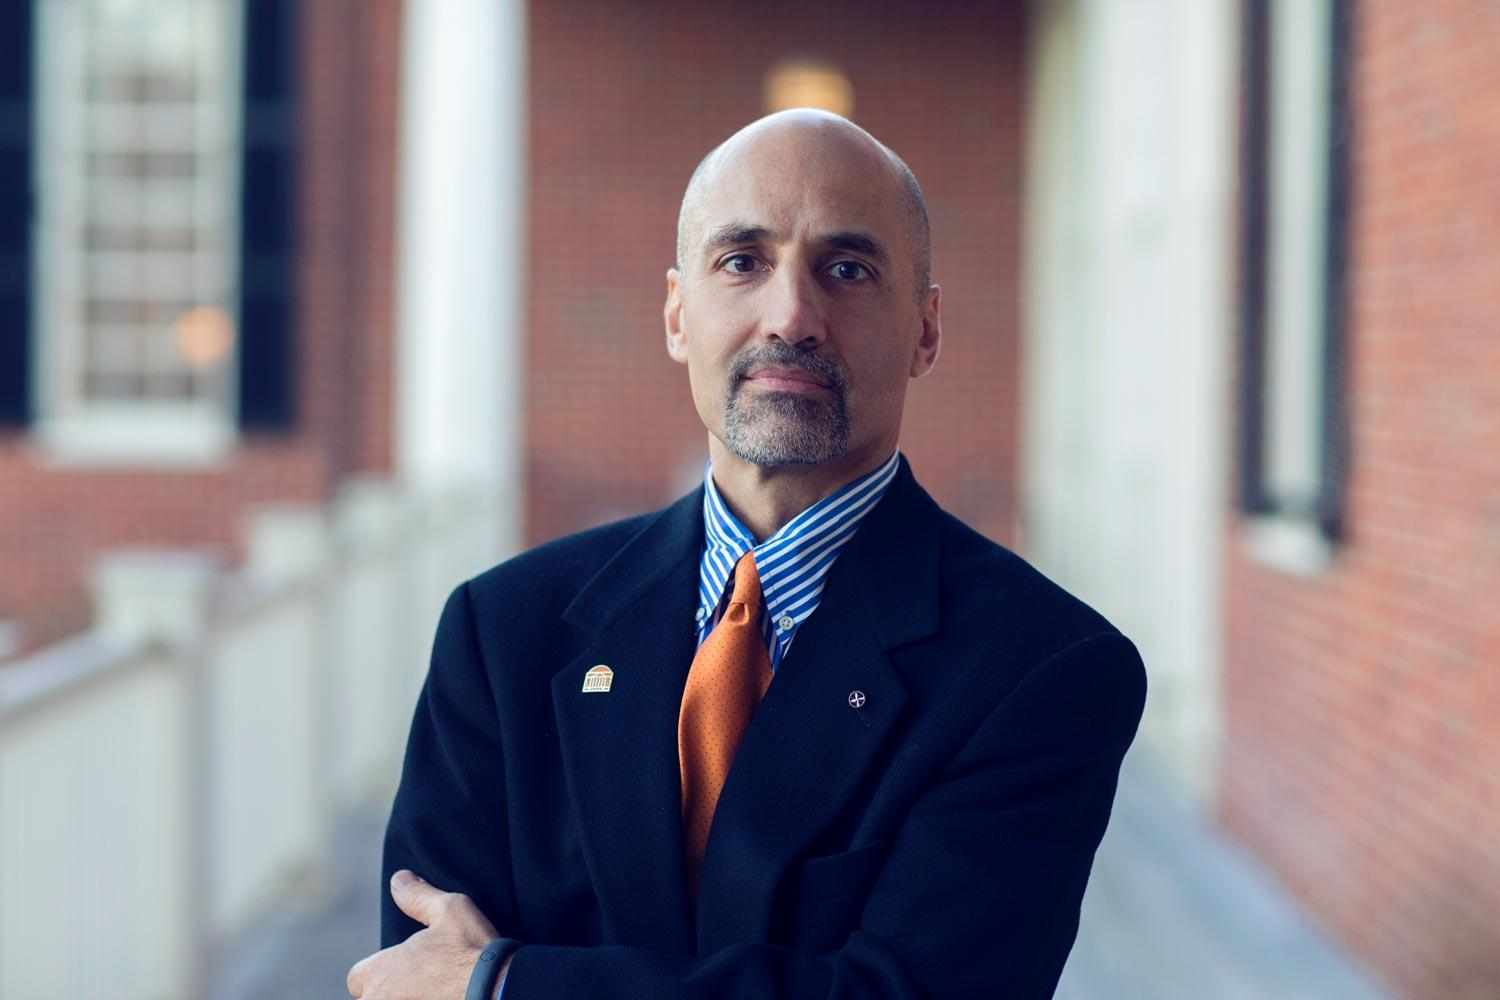 Former National Security Council aide William Antholis is now the director of the Miller Center at UVA.